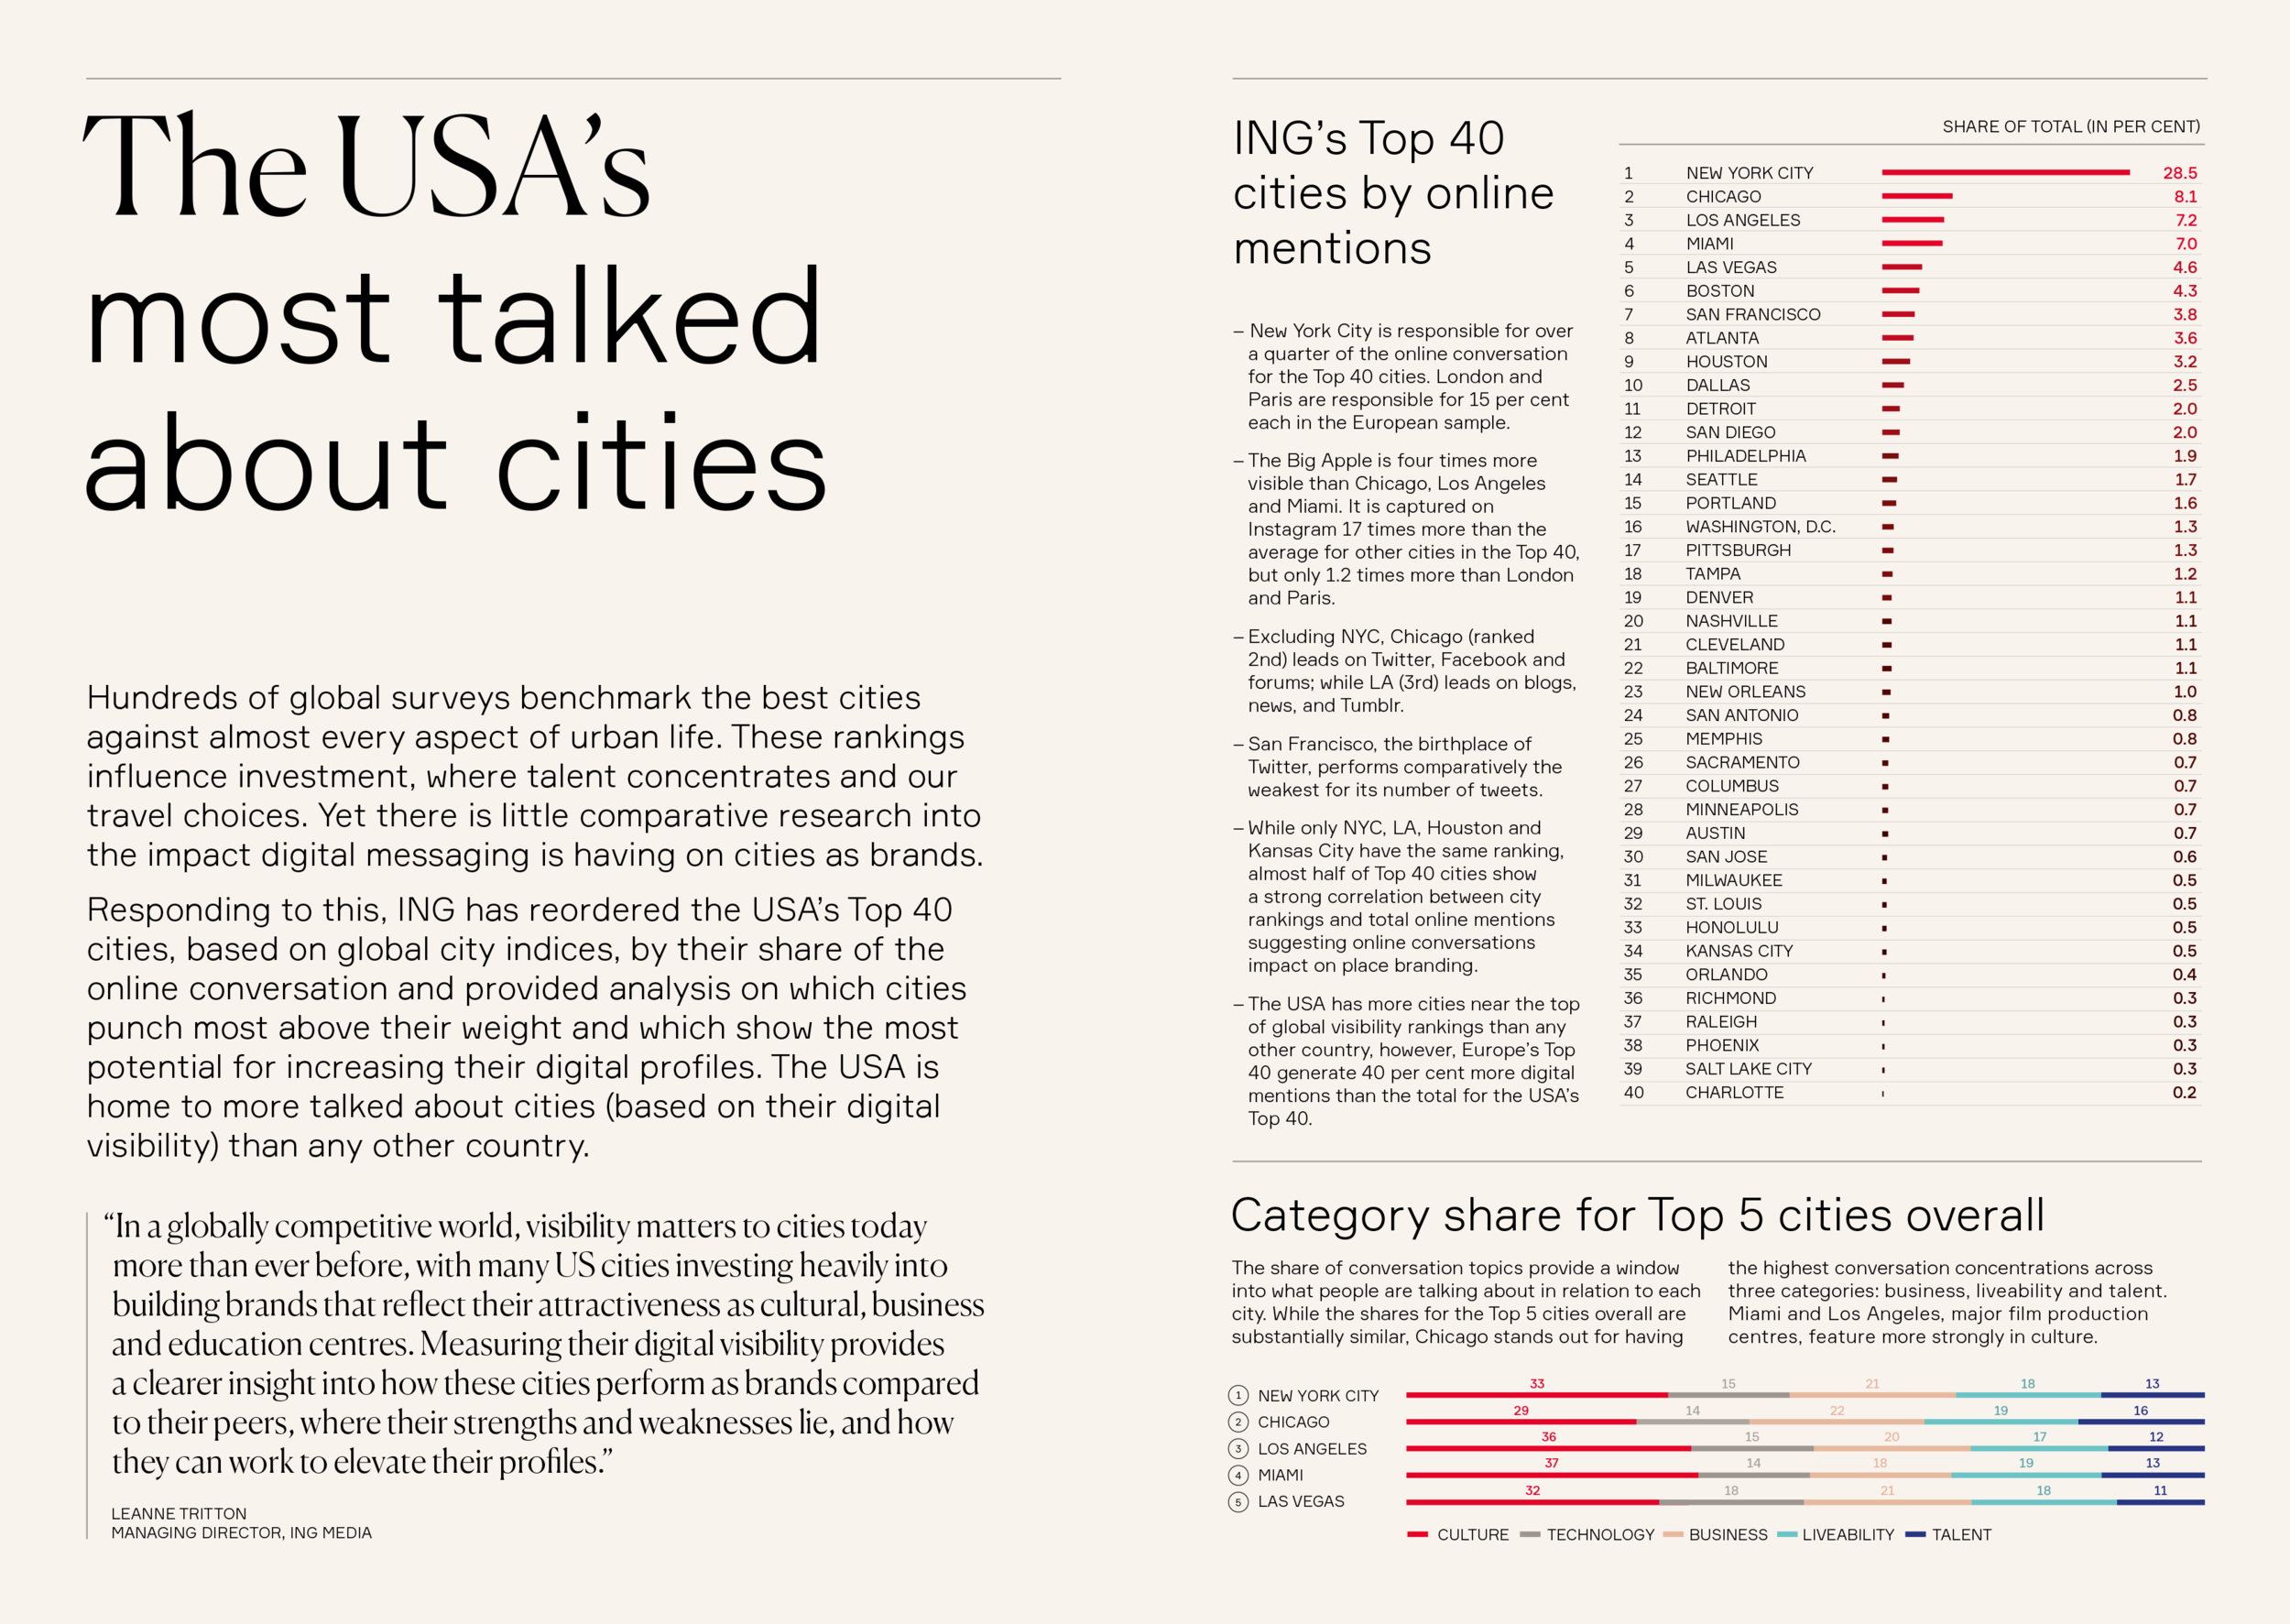 ING_Global_Cities_Digital_Visibility_Series-2019-USA-s_Most_Talked_About_Cities-report-1.png